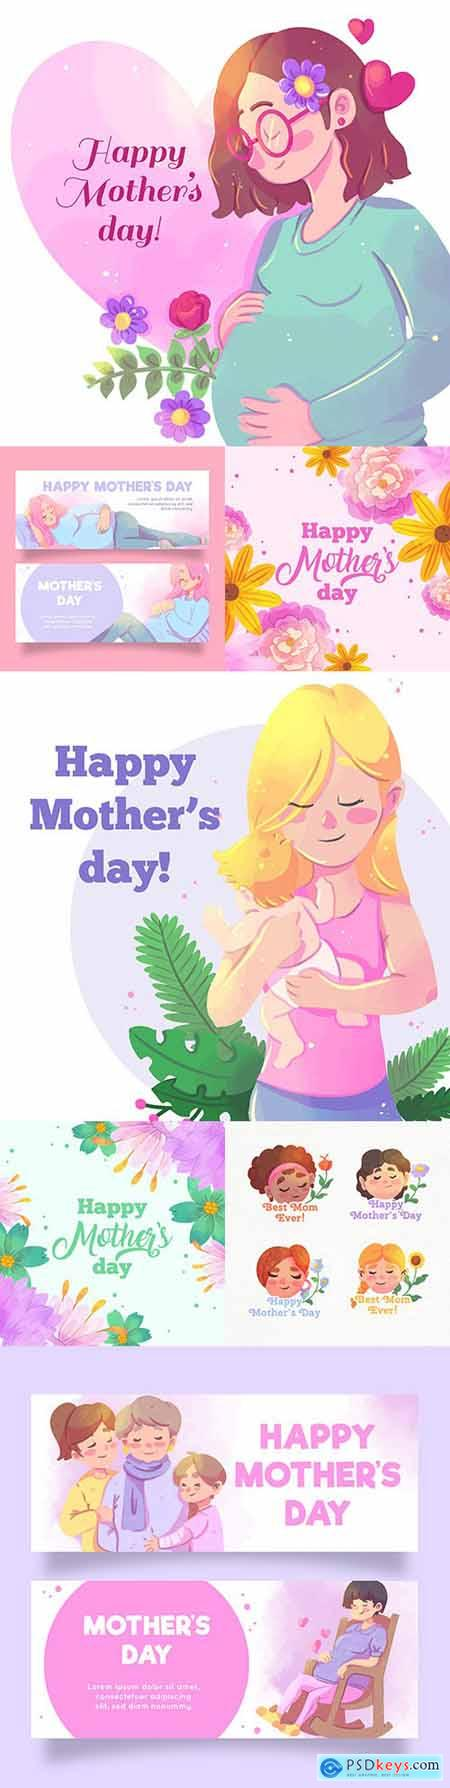 Mother s day watercolor design of woman with child